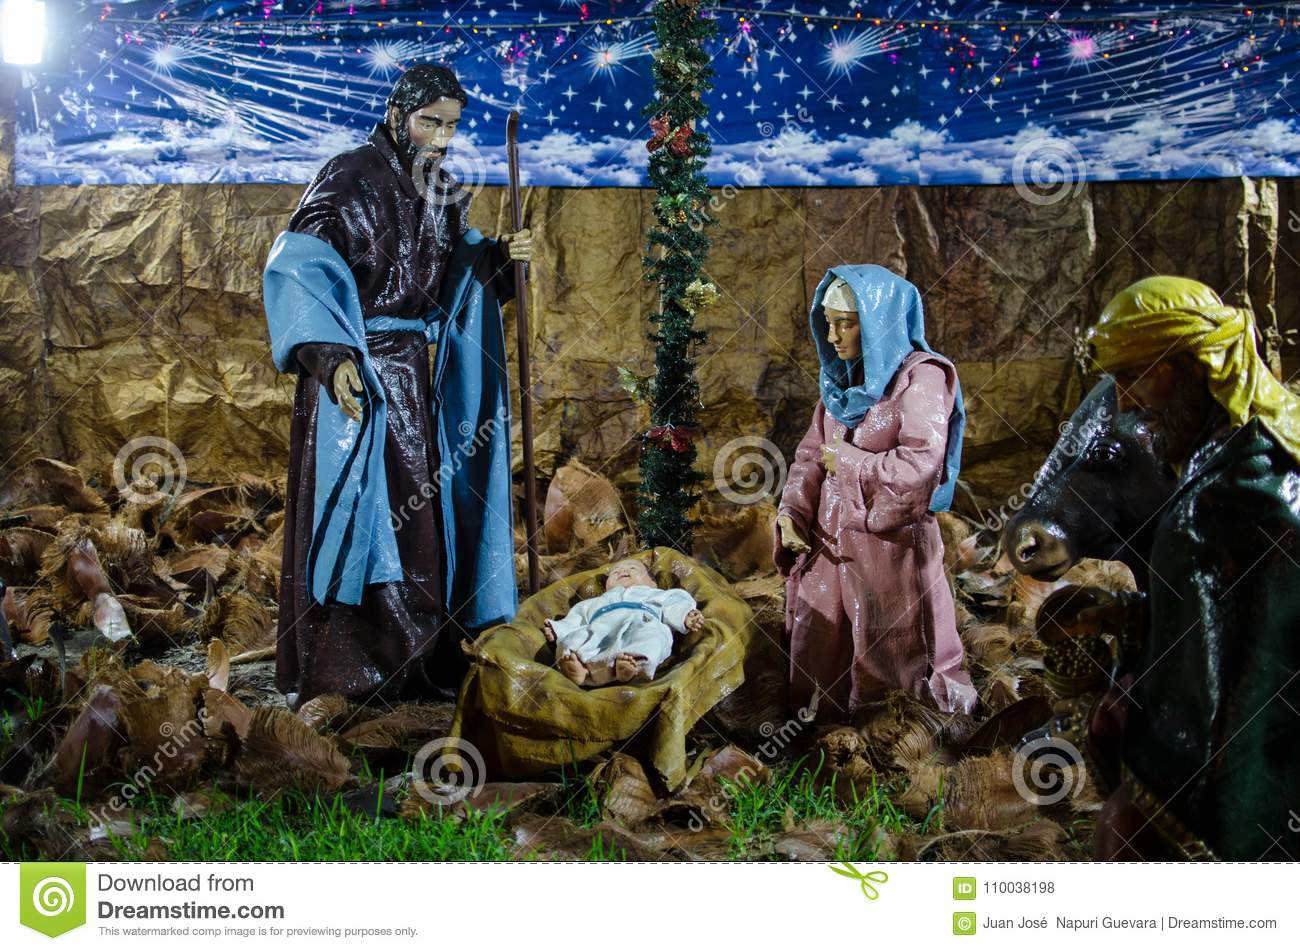 Staging of the birth of Jesus